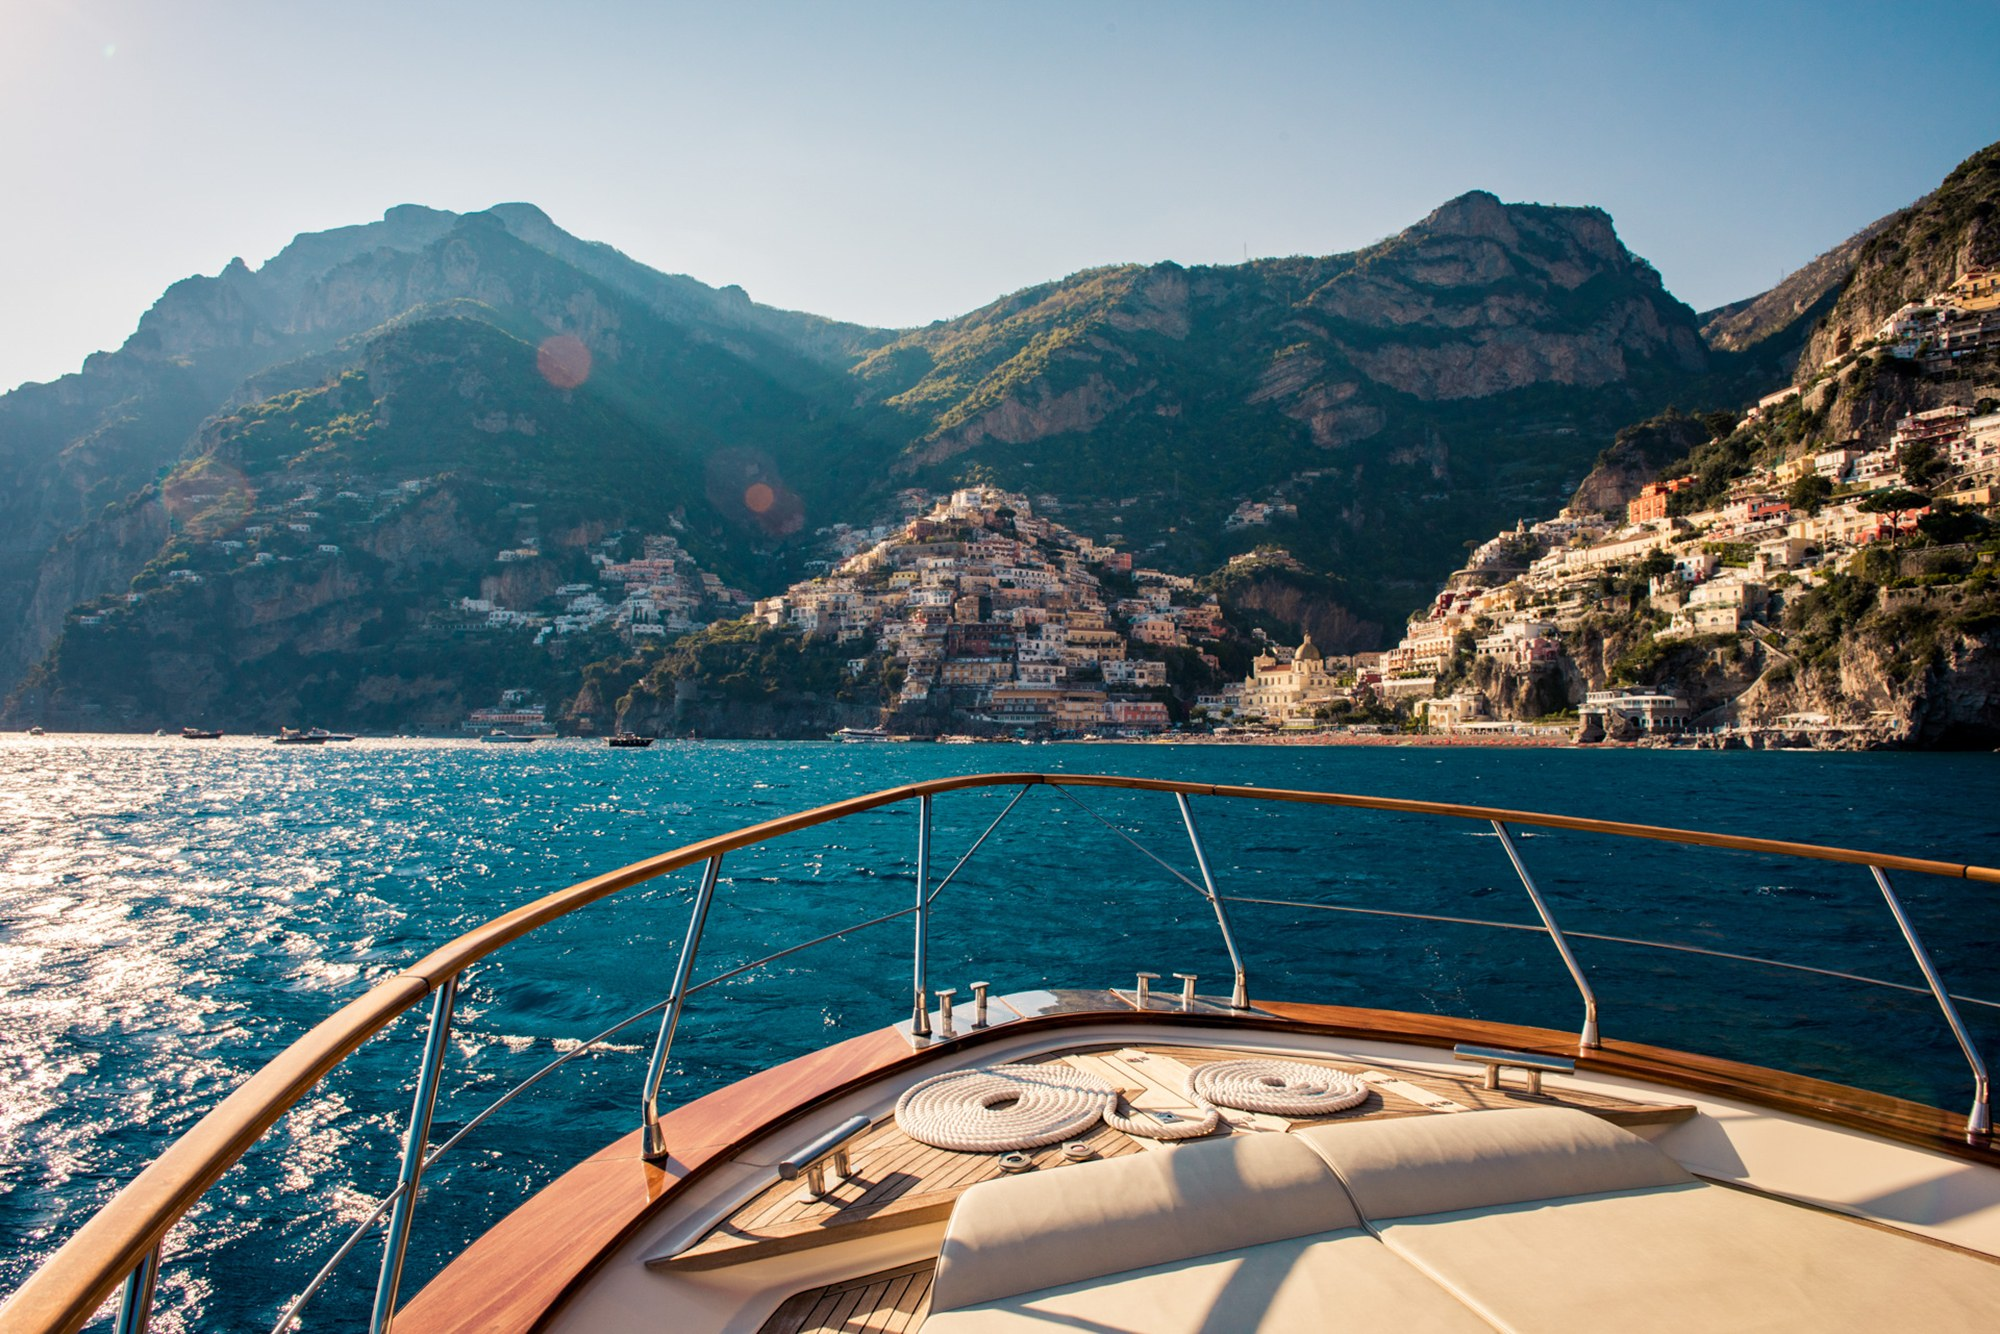 amalfi coast view from from of yacht on cruise